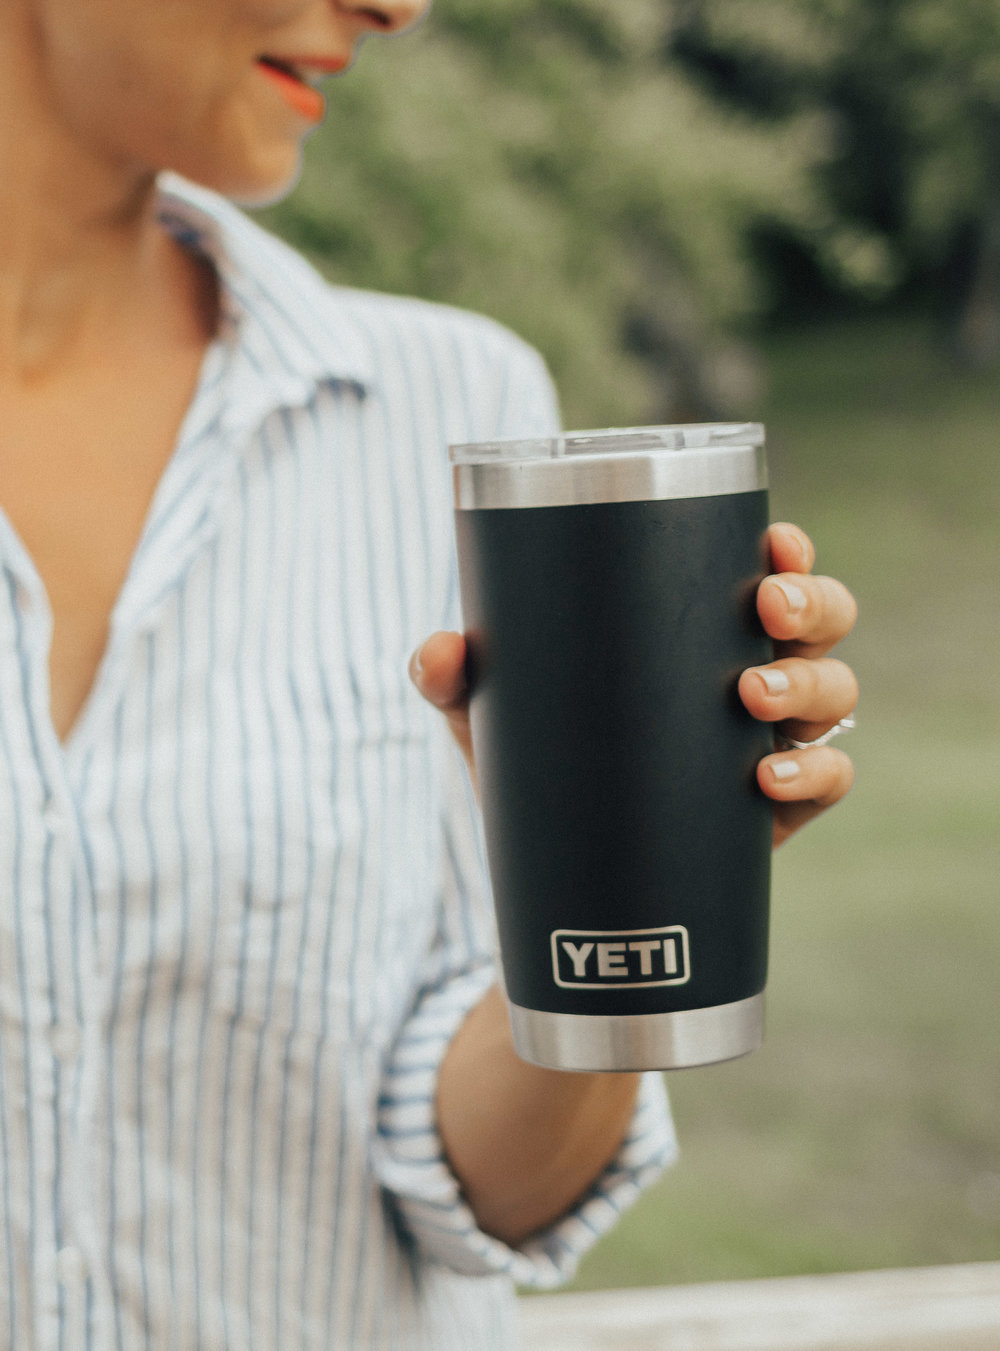 Yeti – Yeti Tumblers – Yeti Rambler Tumblers – Reusable Straws – Reduce Reuse Recycle – Yeti Cups #yeti #heartandseam  www.heartandseam.com